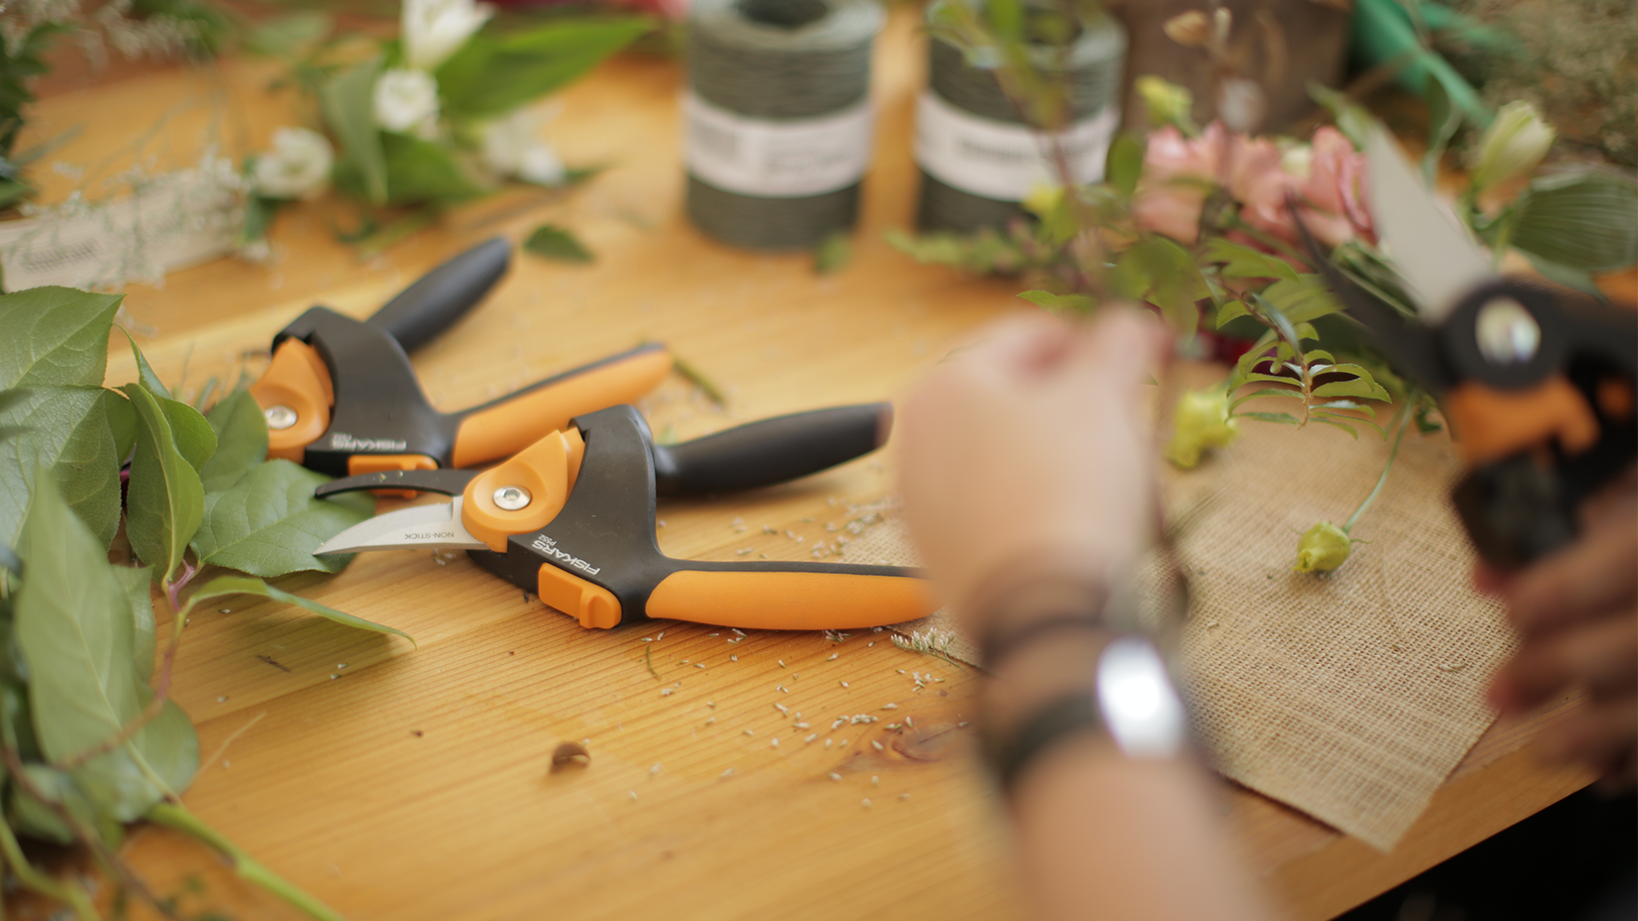 Person using Fiskars tools to cut flowers